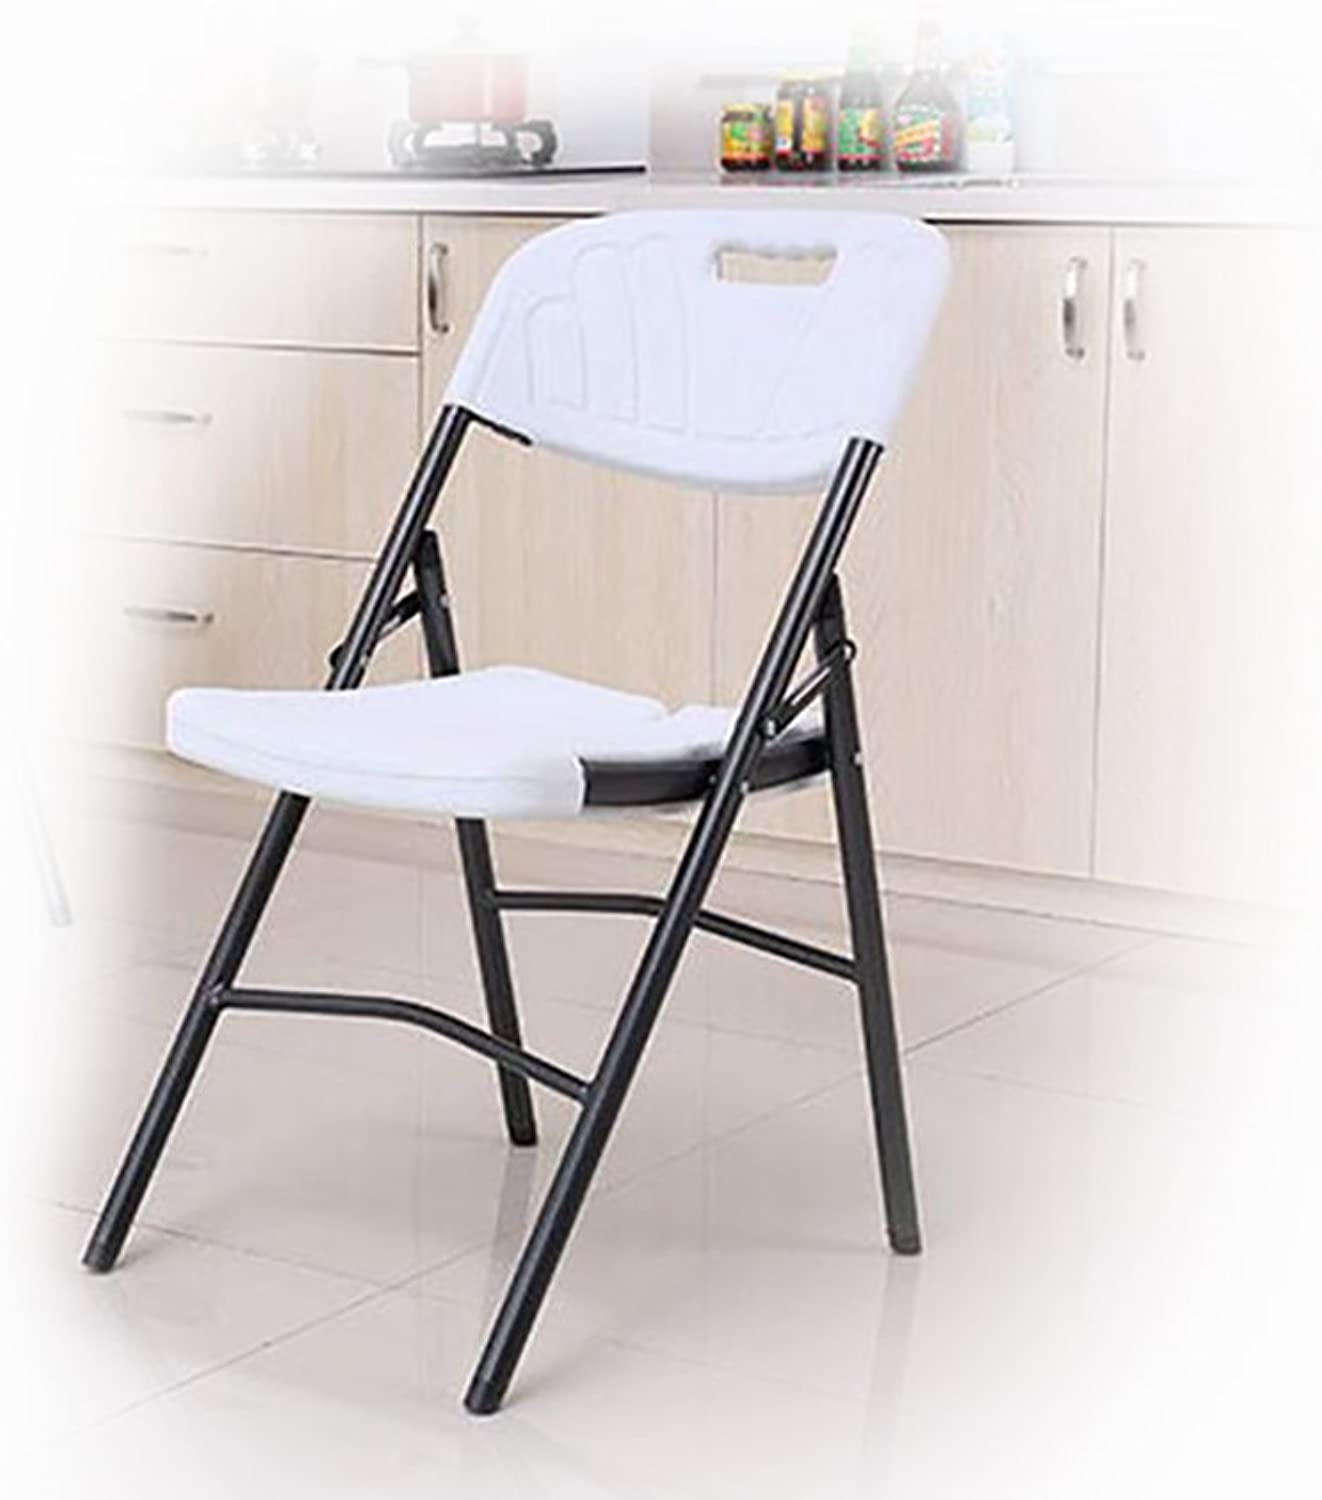 Chair Folding Chairs Plastic Back Chairs Household Dining Chairs Staff Chairs Computer Chairs Training Chairs Conference Chairs